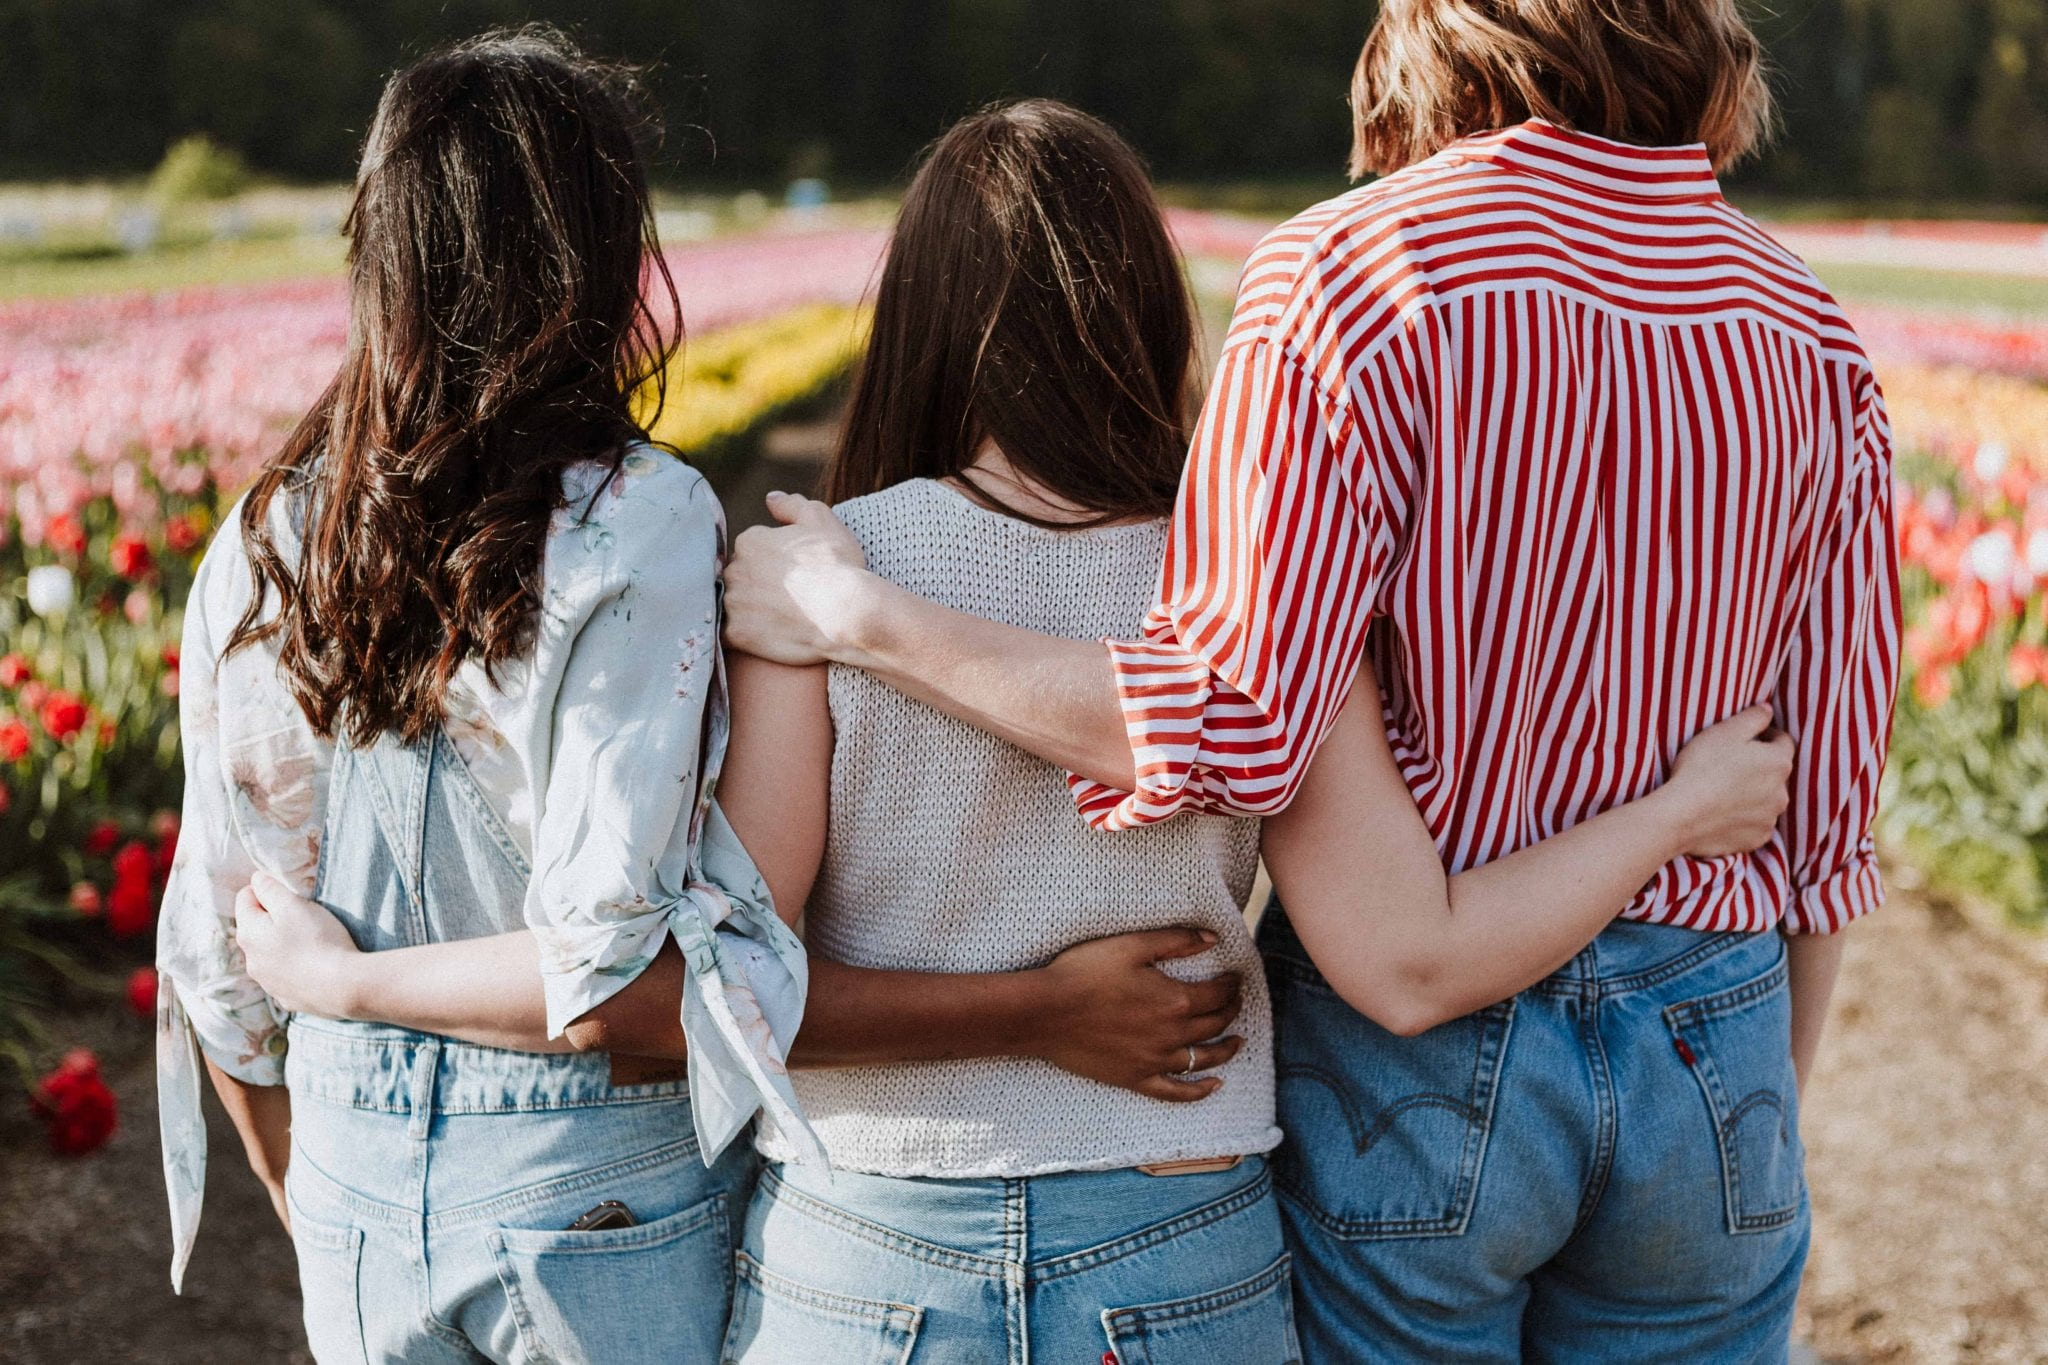 How to Work Together Most Effectively for Mission Trips